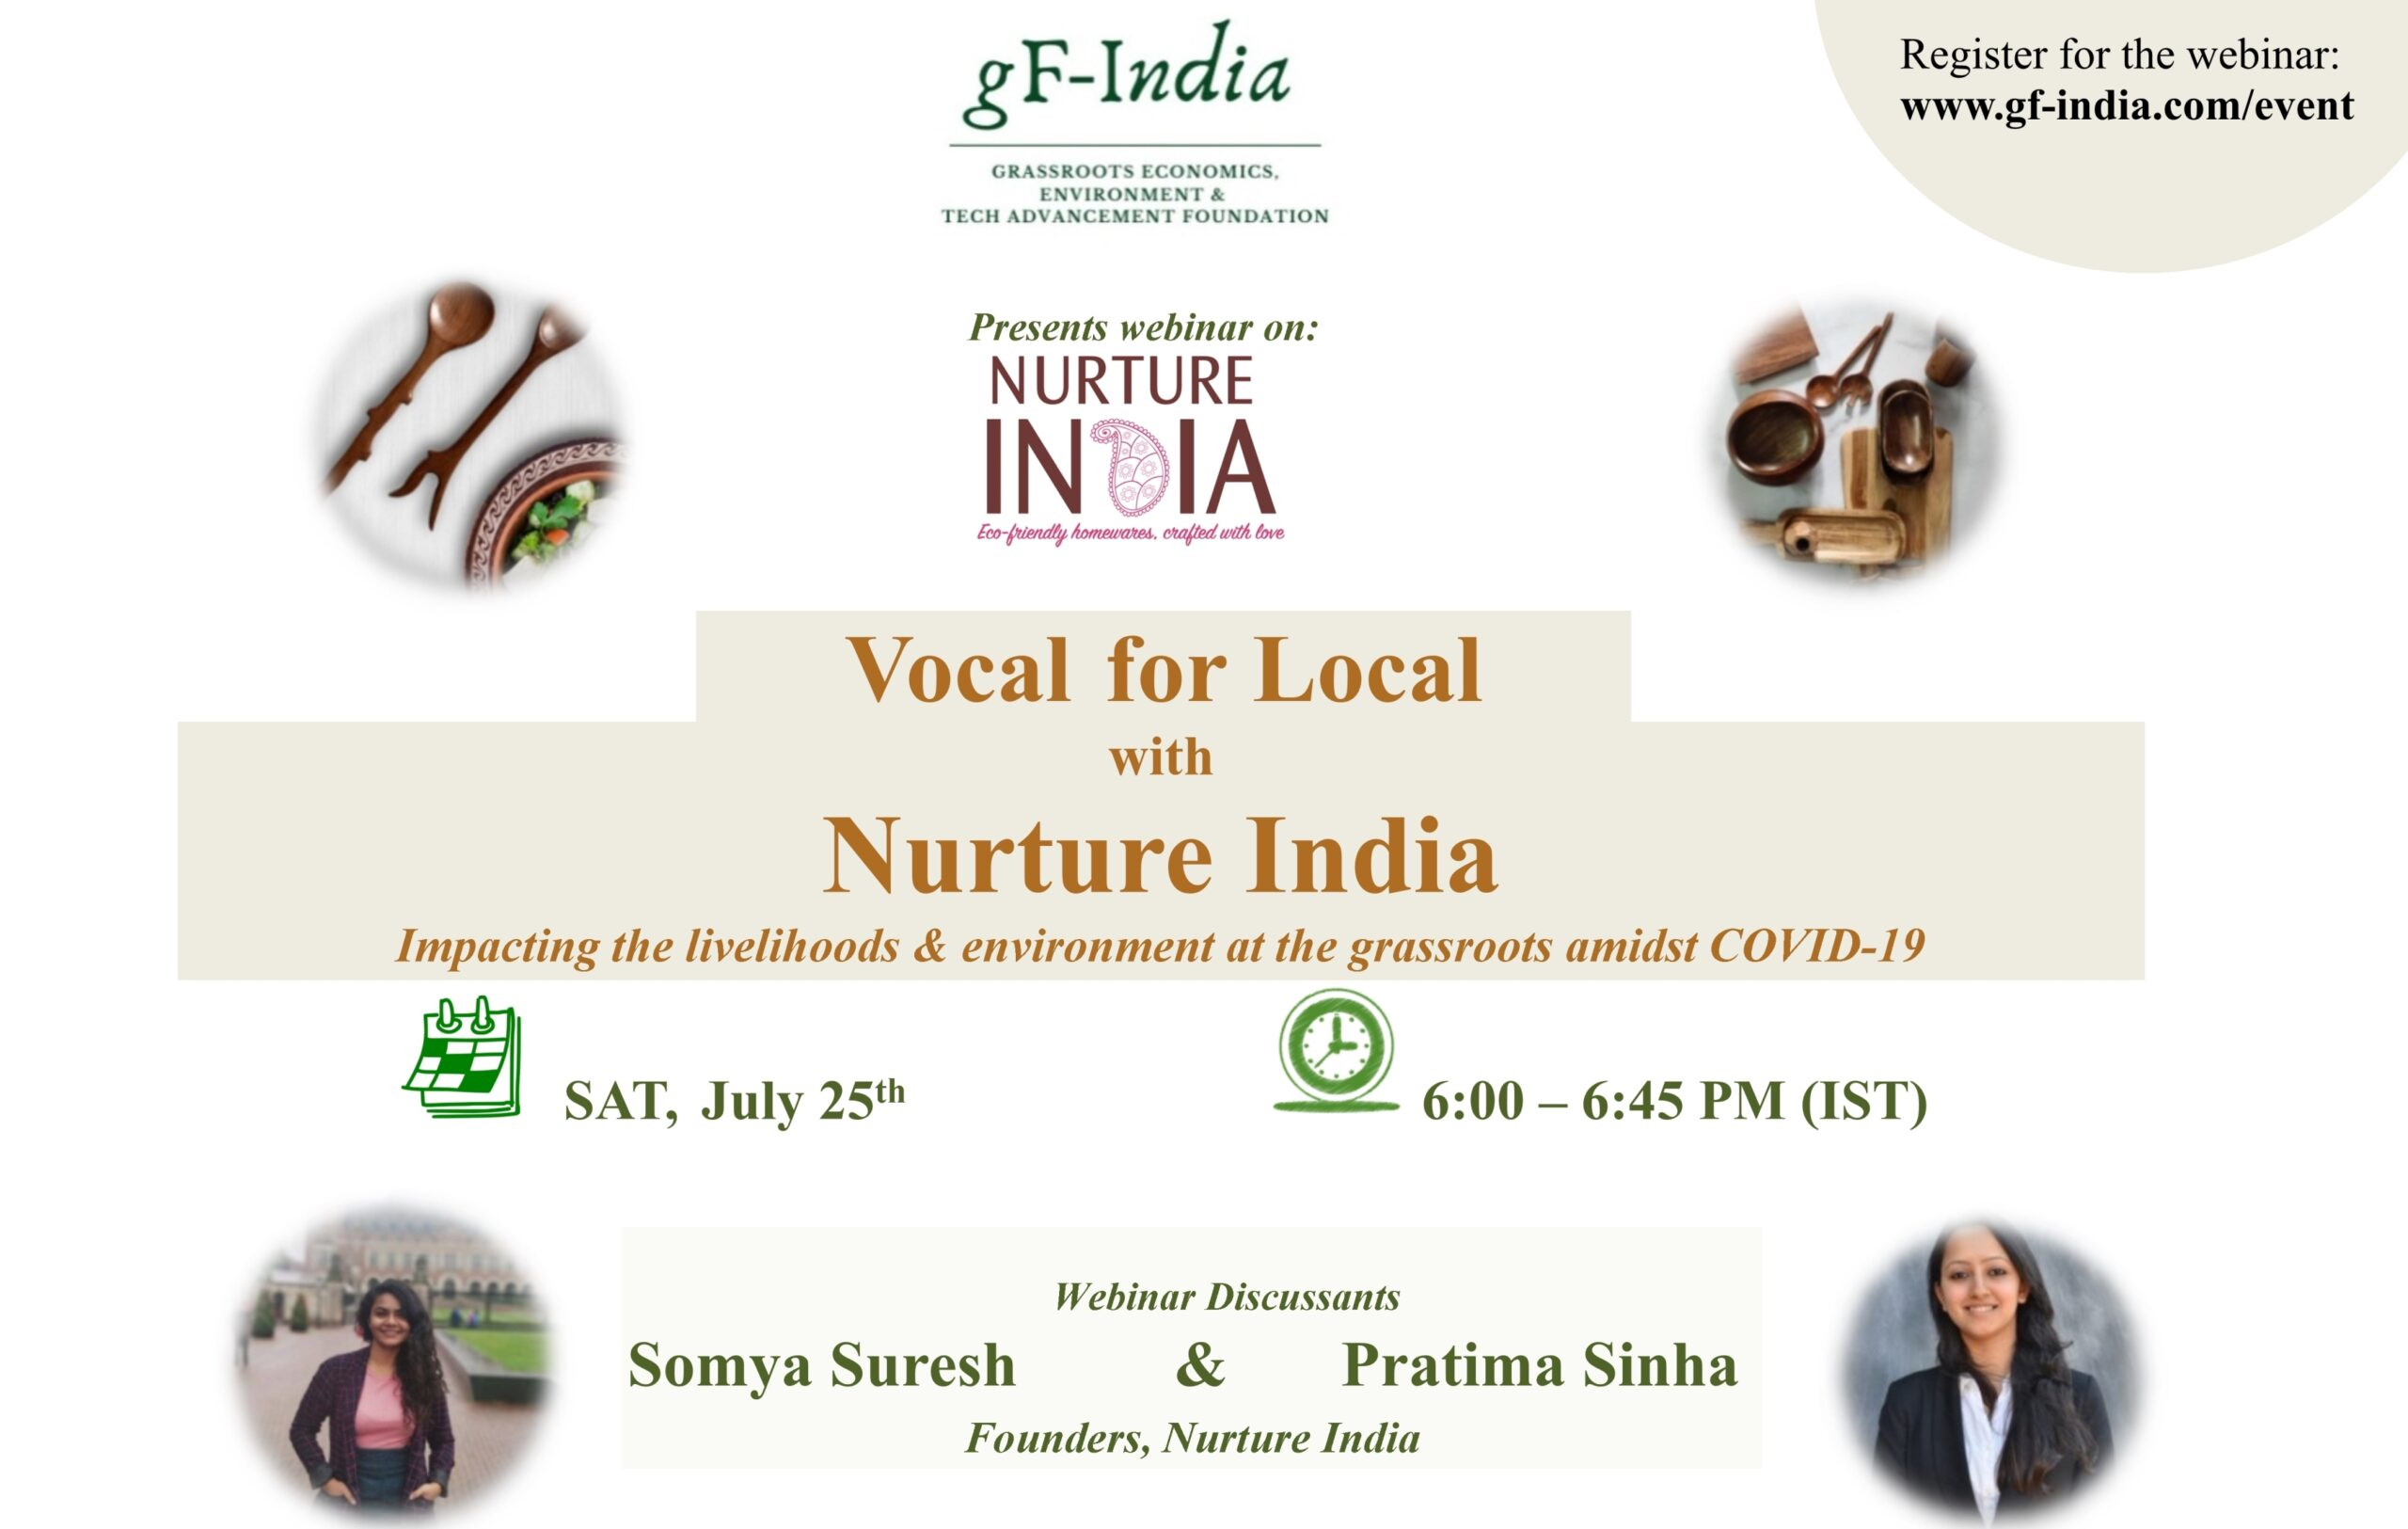 gF-India Webinar - Vocal for Local with Nurture India 25 July 6PM (IST) - Copy